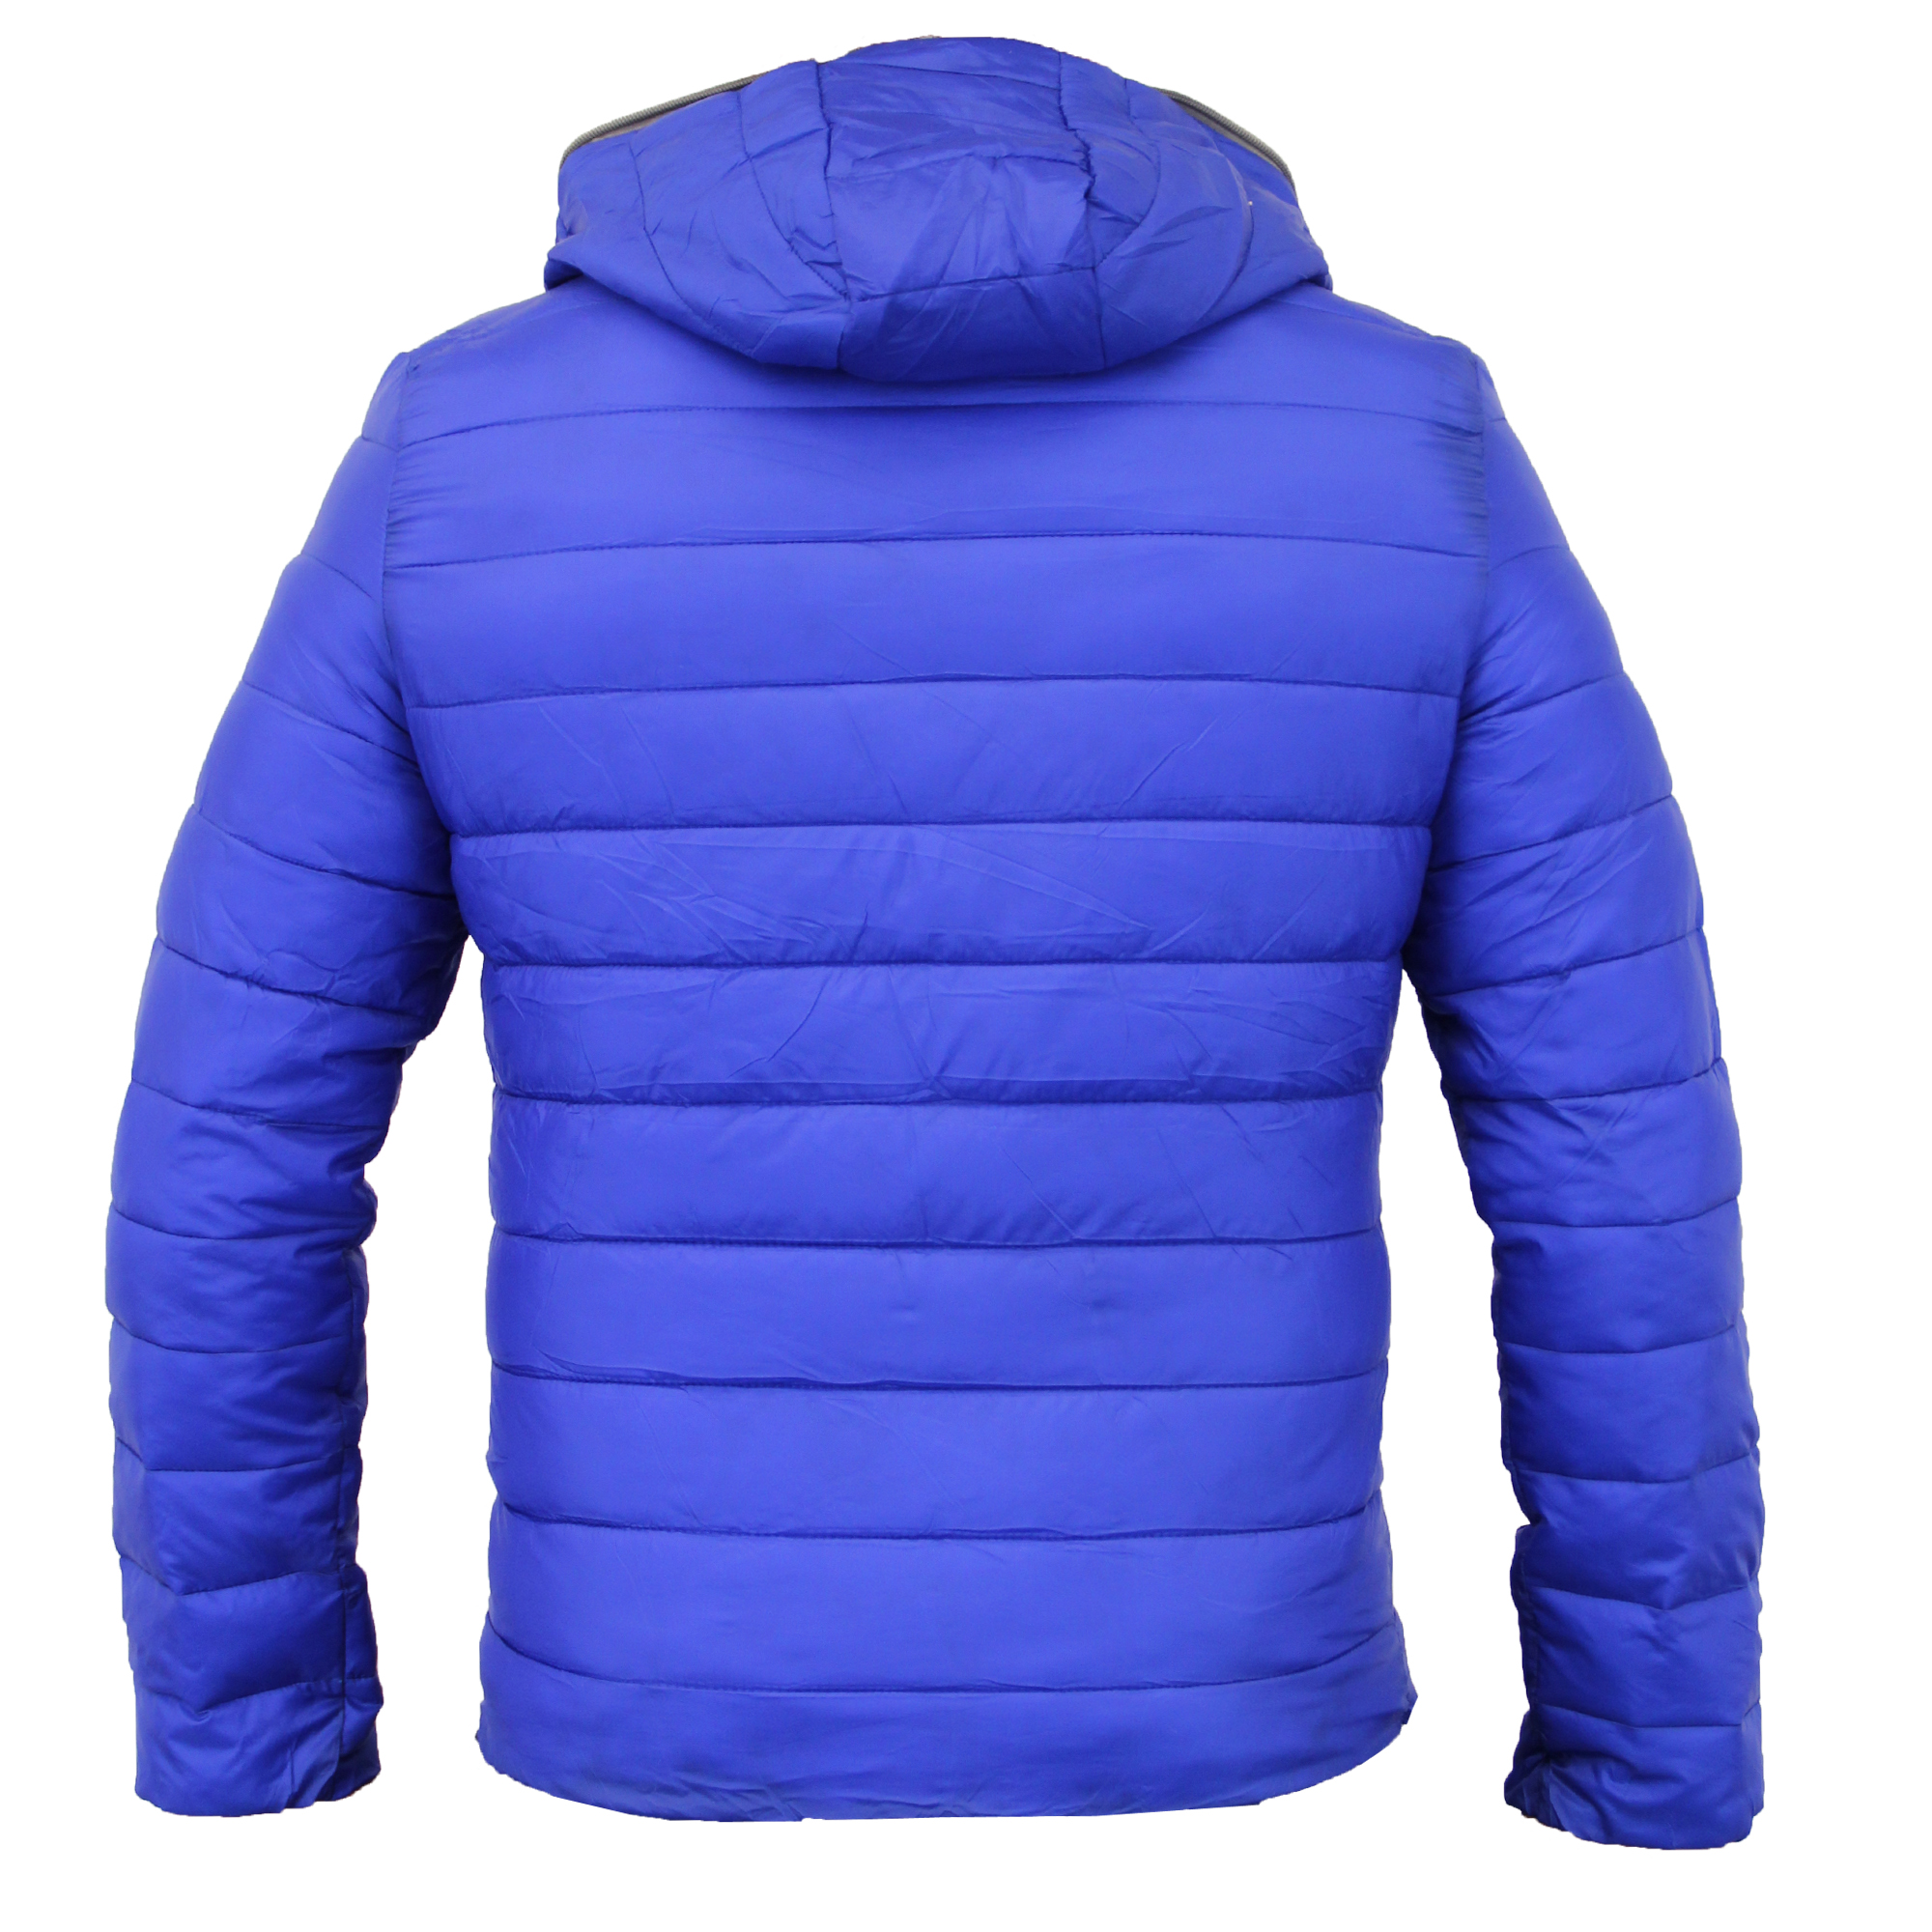 Stay warm & look stylish with our collection of men's jackets & coats. We have a massive selection of long, puffer, padded, denim jackets among others. You'll also find wool, duffle and winter coats from top brands like Karrimor, adidas, Firetrap, Helly Hansen, North Face, ONeills and more.